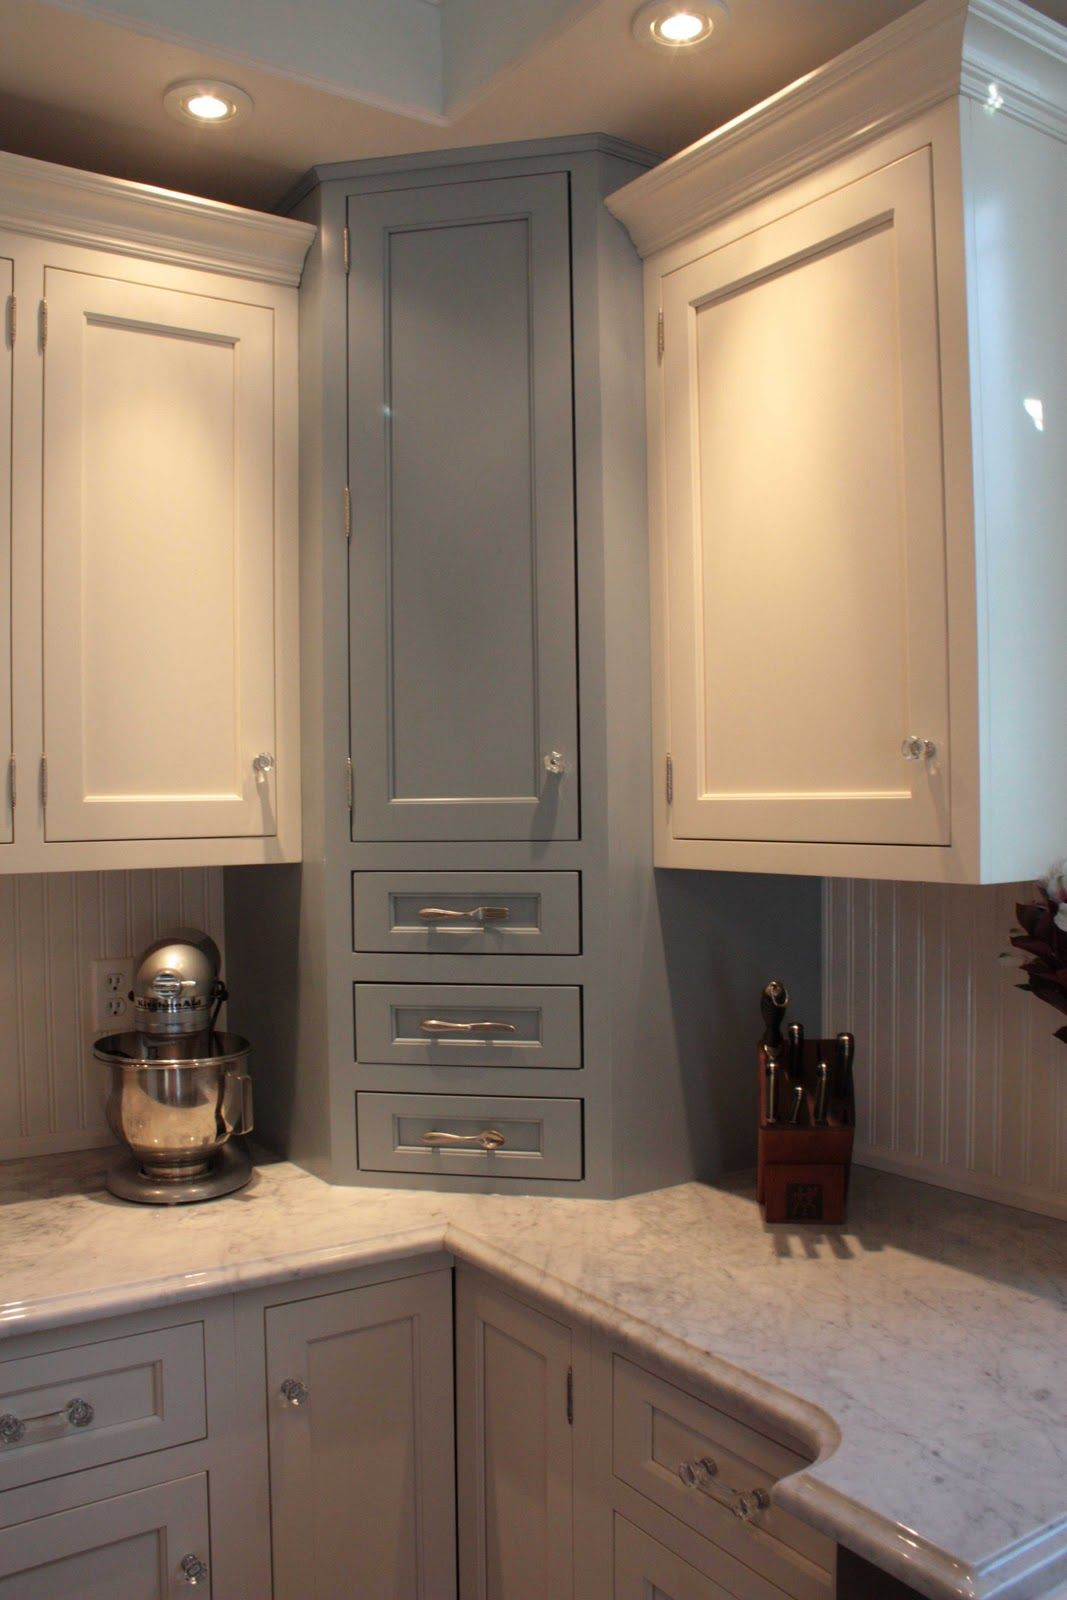 Saucyu0027s Sprinkles (bloggedy Blog Blog): The Tour  White Shaker Cabinets  With Grey